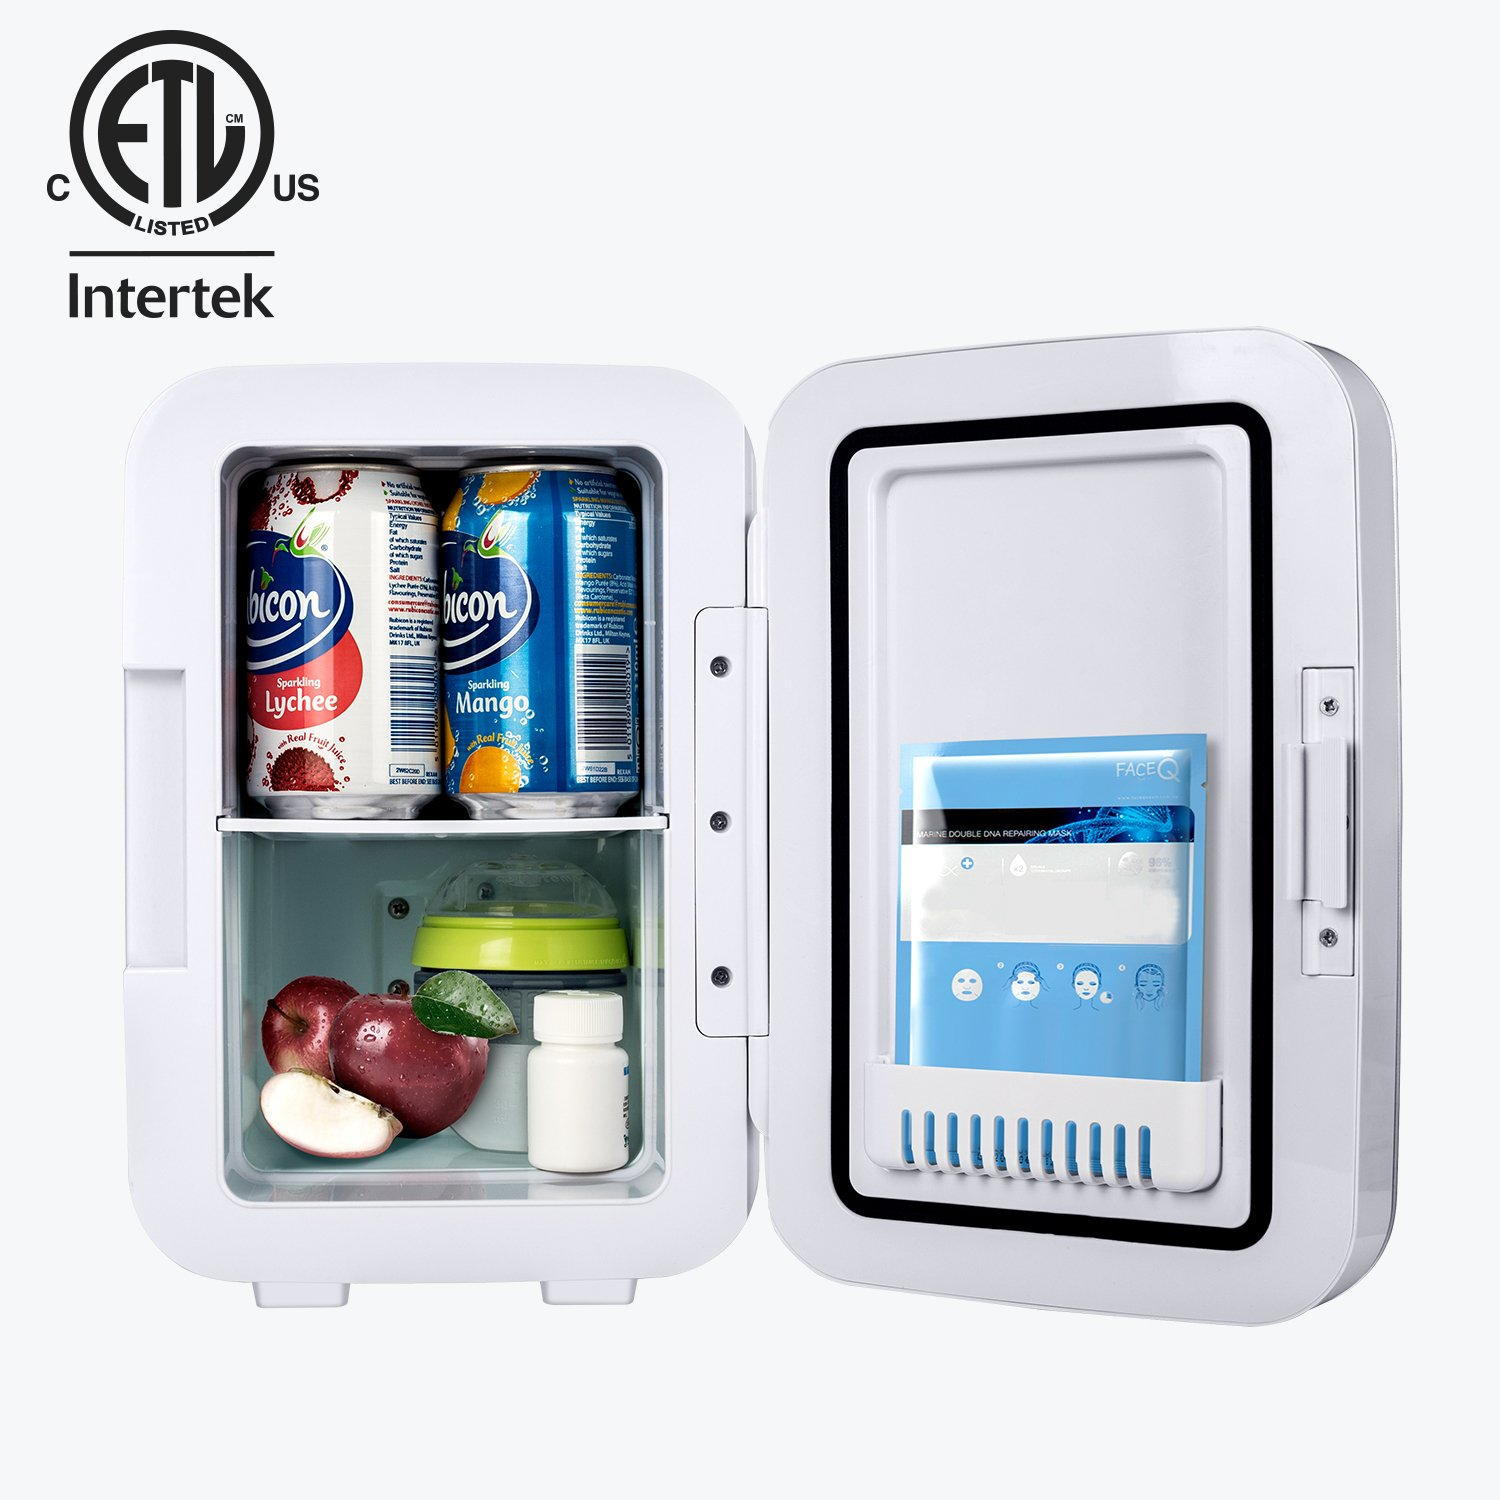 Kinverch Mini Fridge Electric Cooler and Warmer (6 Liter / 6 Can Plus) :110v AC / 12V DC Portable Thermoelectric System,,For Car /Home /Kichen/Junket/Outdoor for frinds / parents/yourself (Silver) by Kinverch (Image #3)